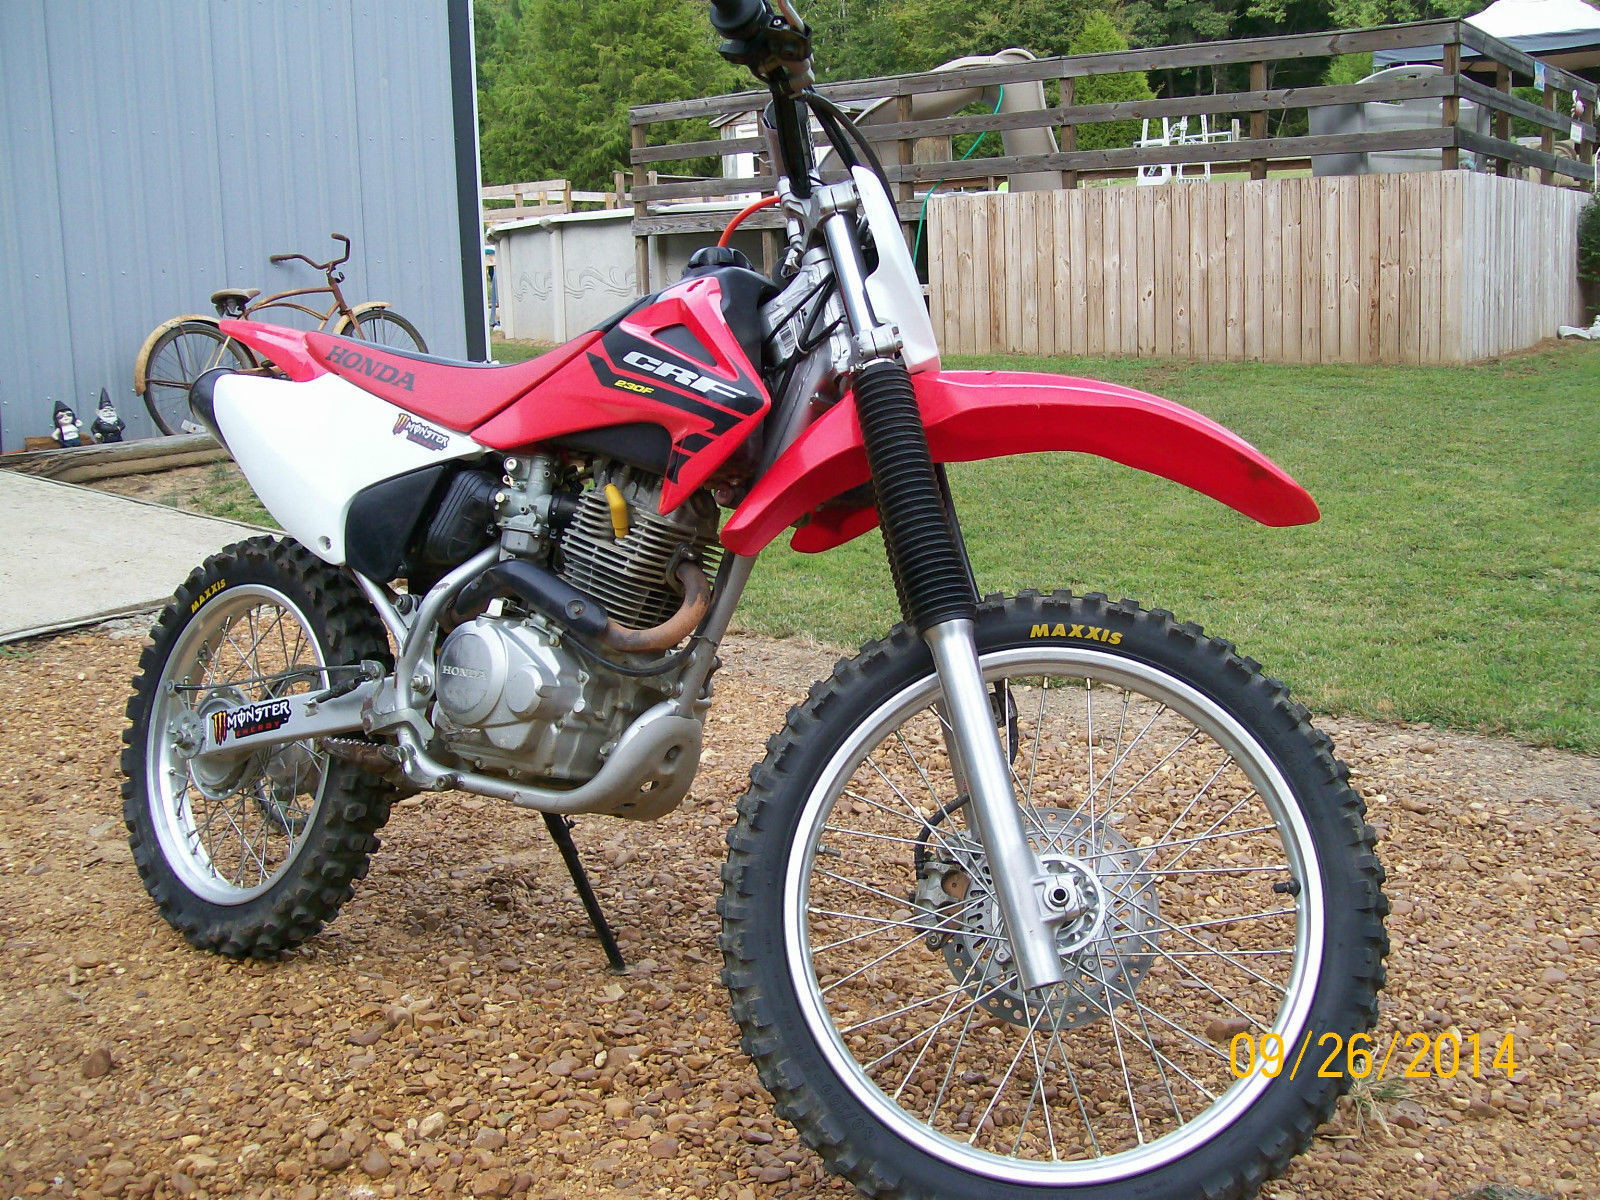 2004 HONDA CRF230F Dirt Bike